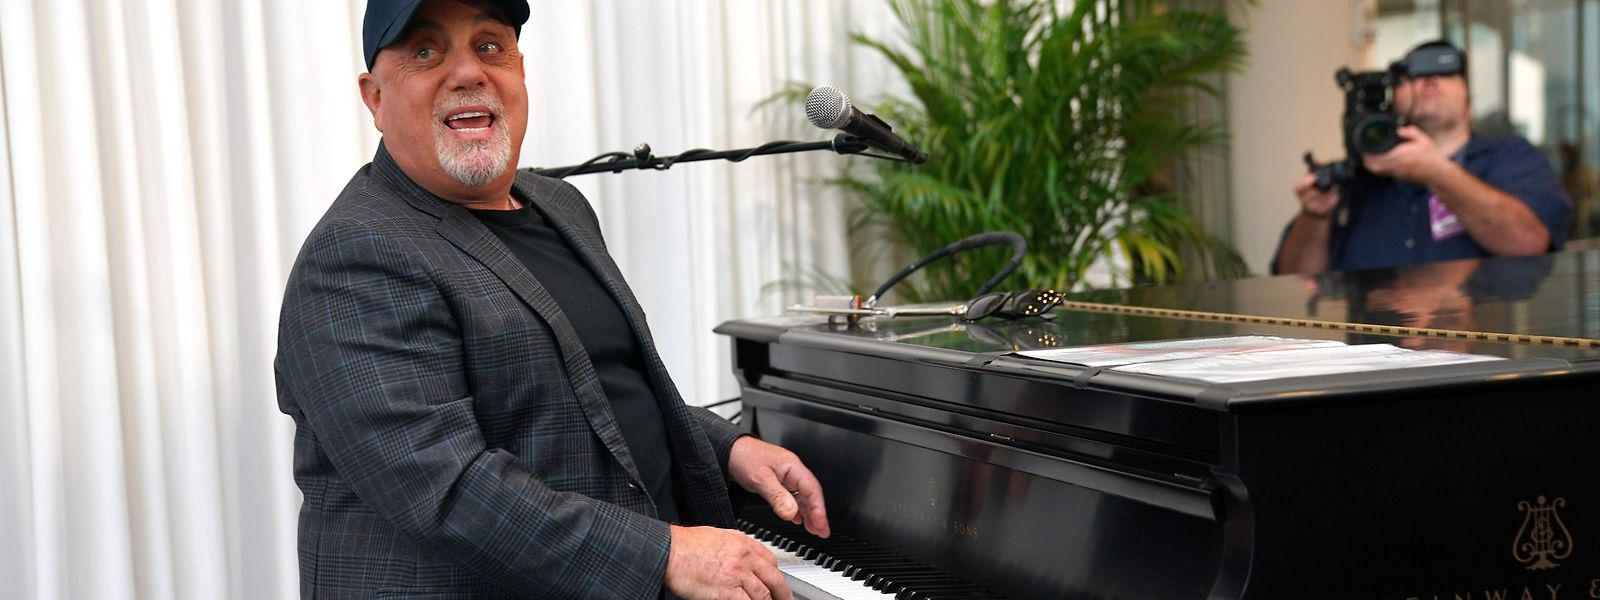 Musician Billy Joel poses at the piano after a press conference at Madison Square Garden July 18, 2018 to celebrate his achievement of 100 lifetime performances at Madison Square Garden in New York. Joel's 100th lifetime performance comes 40 years after his first Madison Square Garden  performance, on December 14, 1978. / AFP PHOTO / TIMOTHY A. CLARY